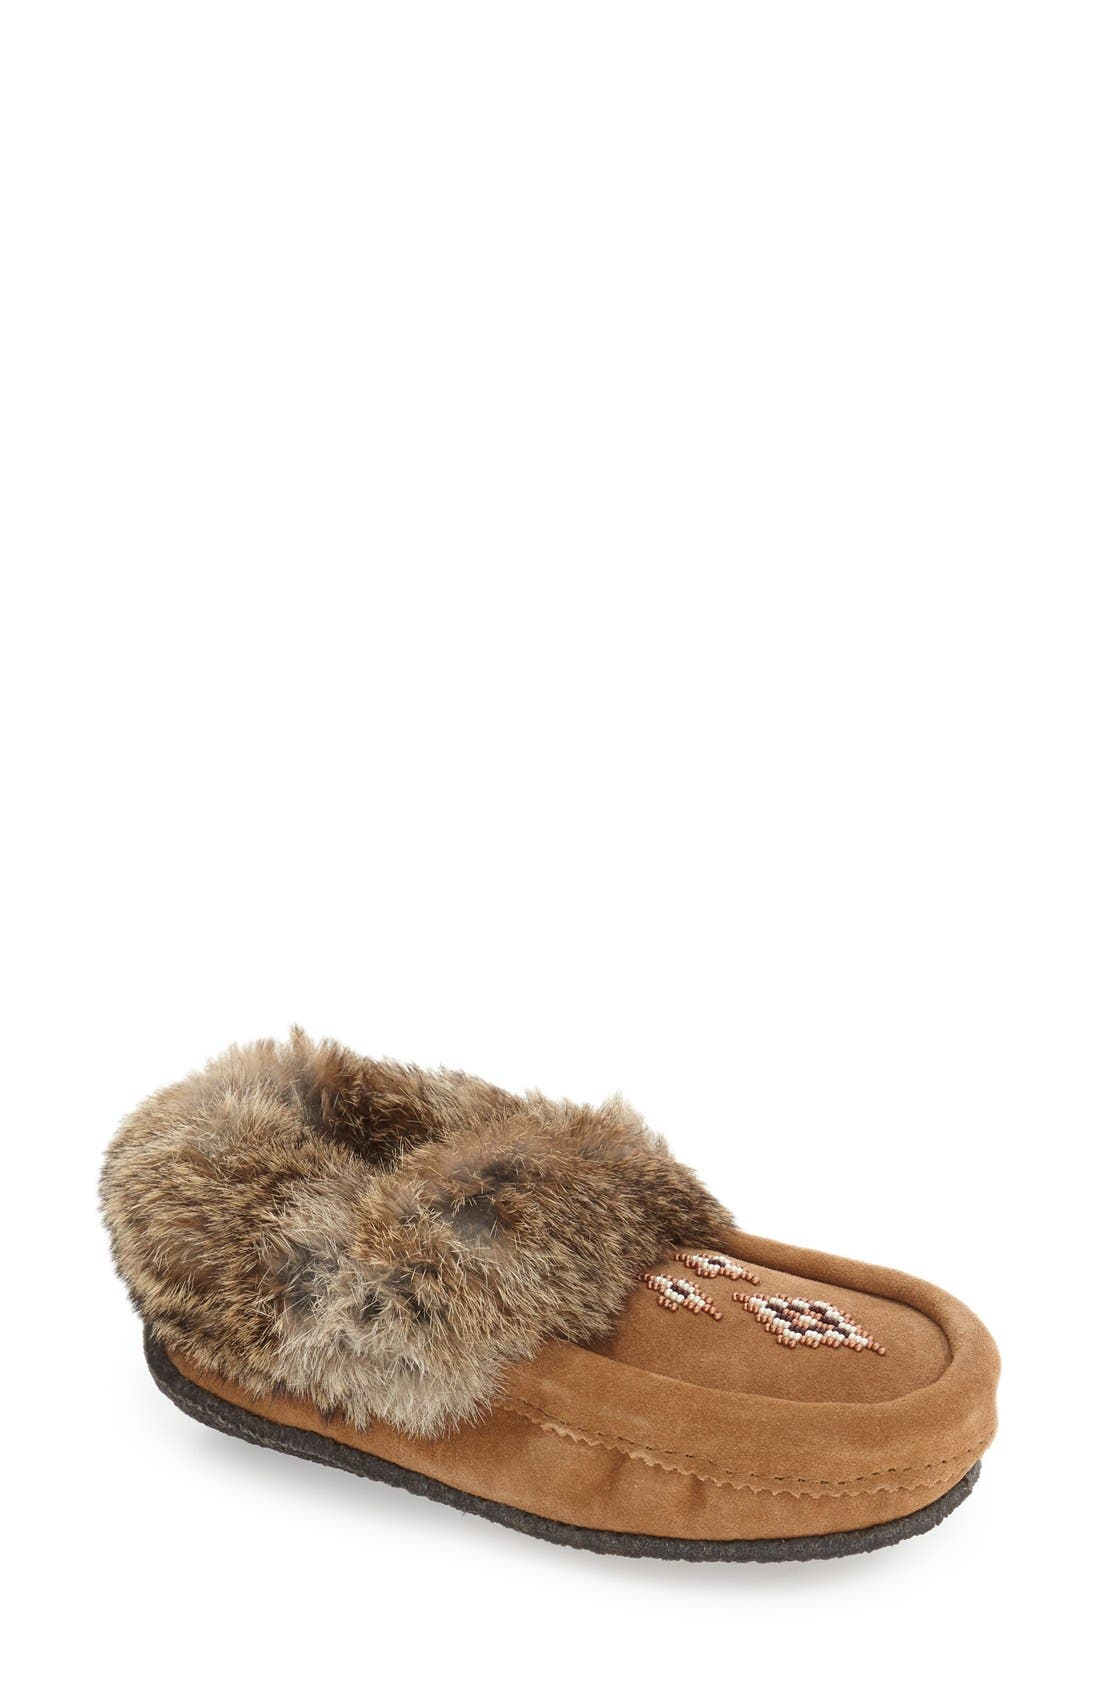 MANITOBAH MUKLUKS Genuine Shearling And Rabbit Fur Mukluk Slipper in Oak Rabbit Fur Suede